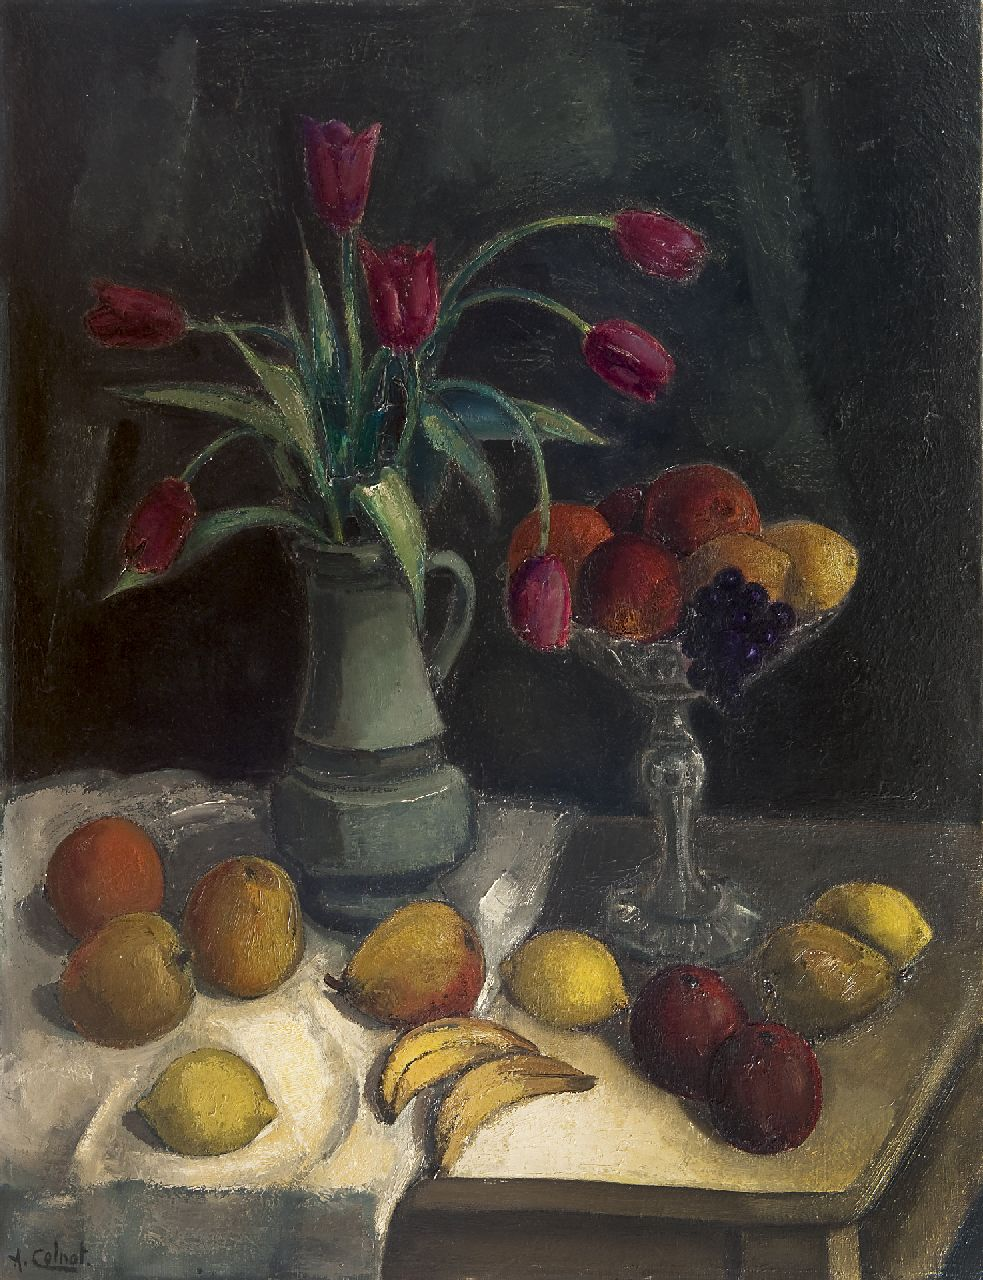 Colnot A.J.G.  | 'Arnout' Jacobus Gustaaf Colnot | Paintings offered for sale | A still life with fruit and tulips on a table, oil on canvas 92.2 x 70.4 cm, signed l.l.